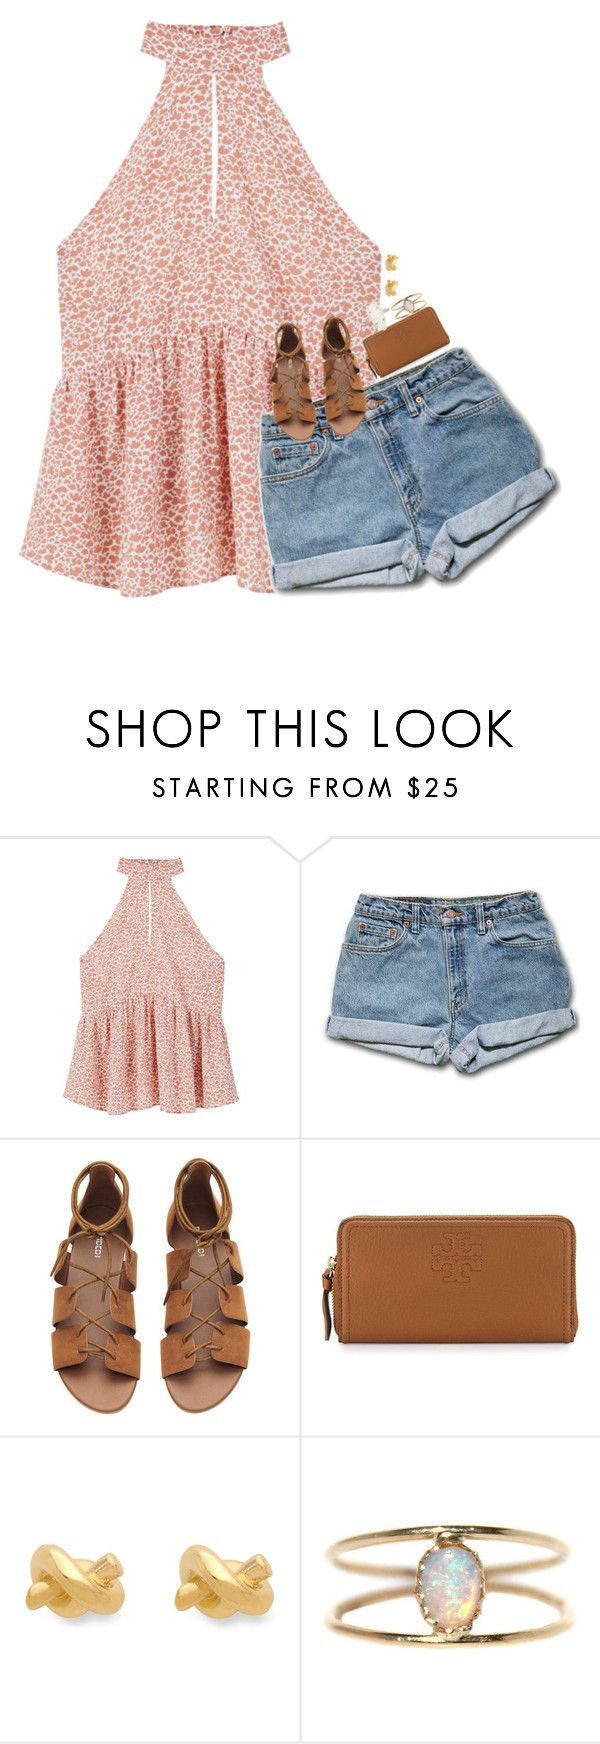 """""""can't stop thinking about him"""" by hmcdaniel01 ❤ liked on Polyvore featuring MANGO, Tory Burch, Kate Spade, LUMO and Kendra Scott"""